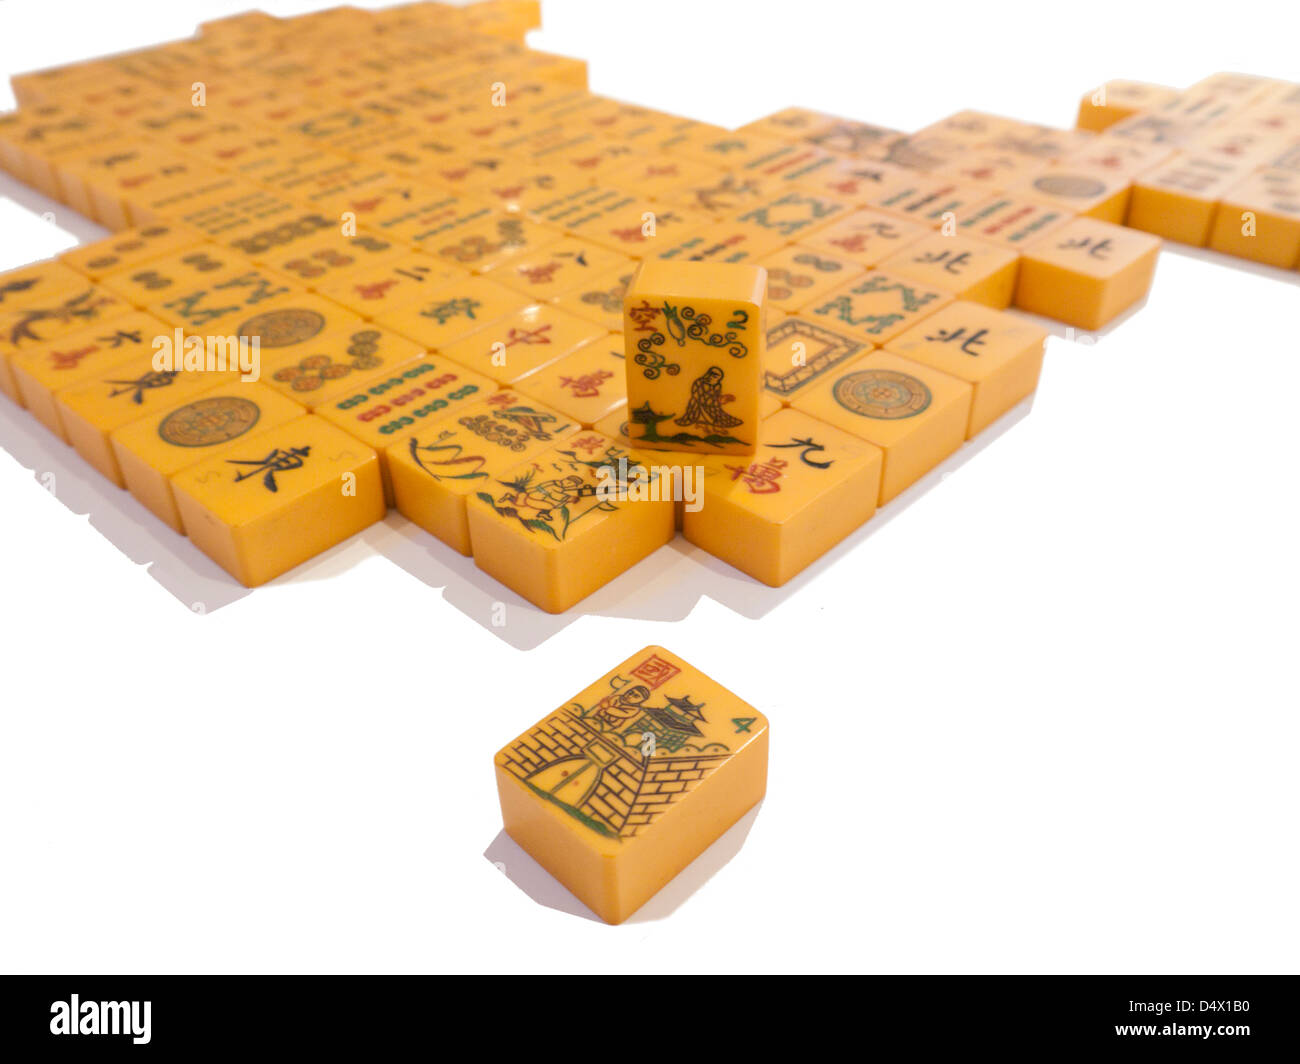 An approximate 3D representation map of China made of Mah Jong tiles viewed from the Taiwanese perspective - Stock Image